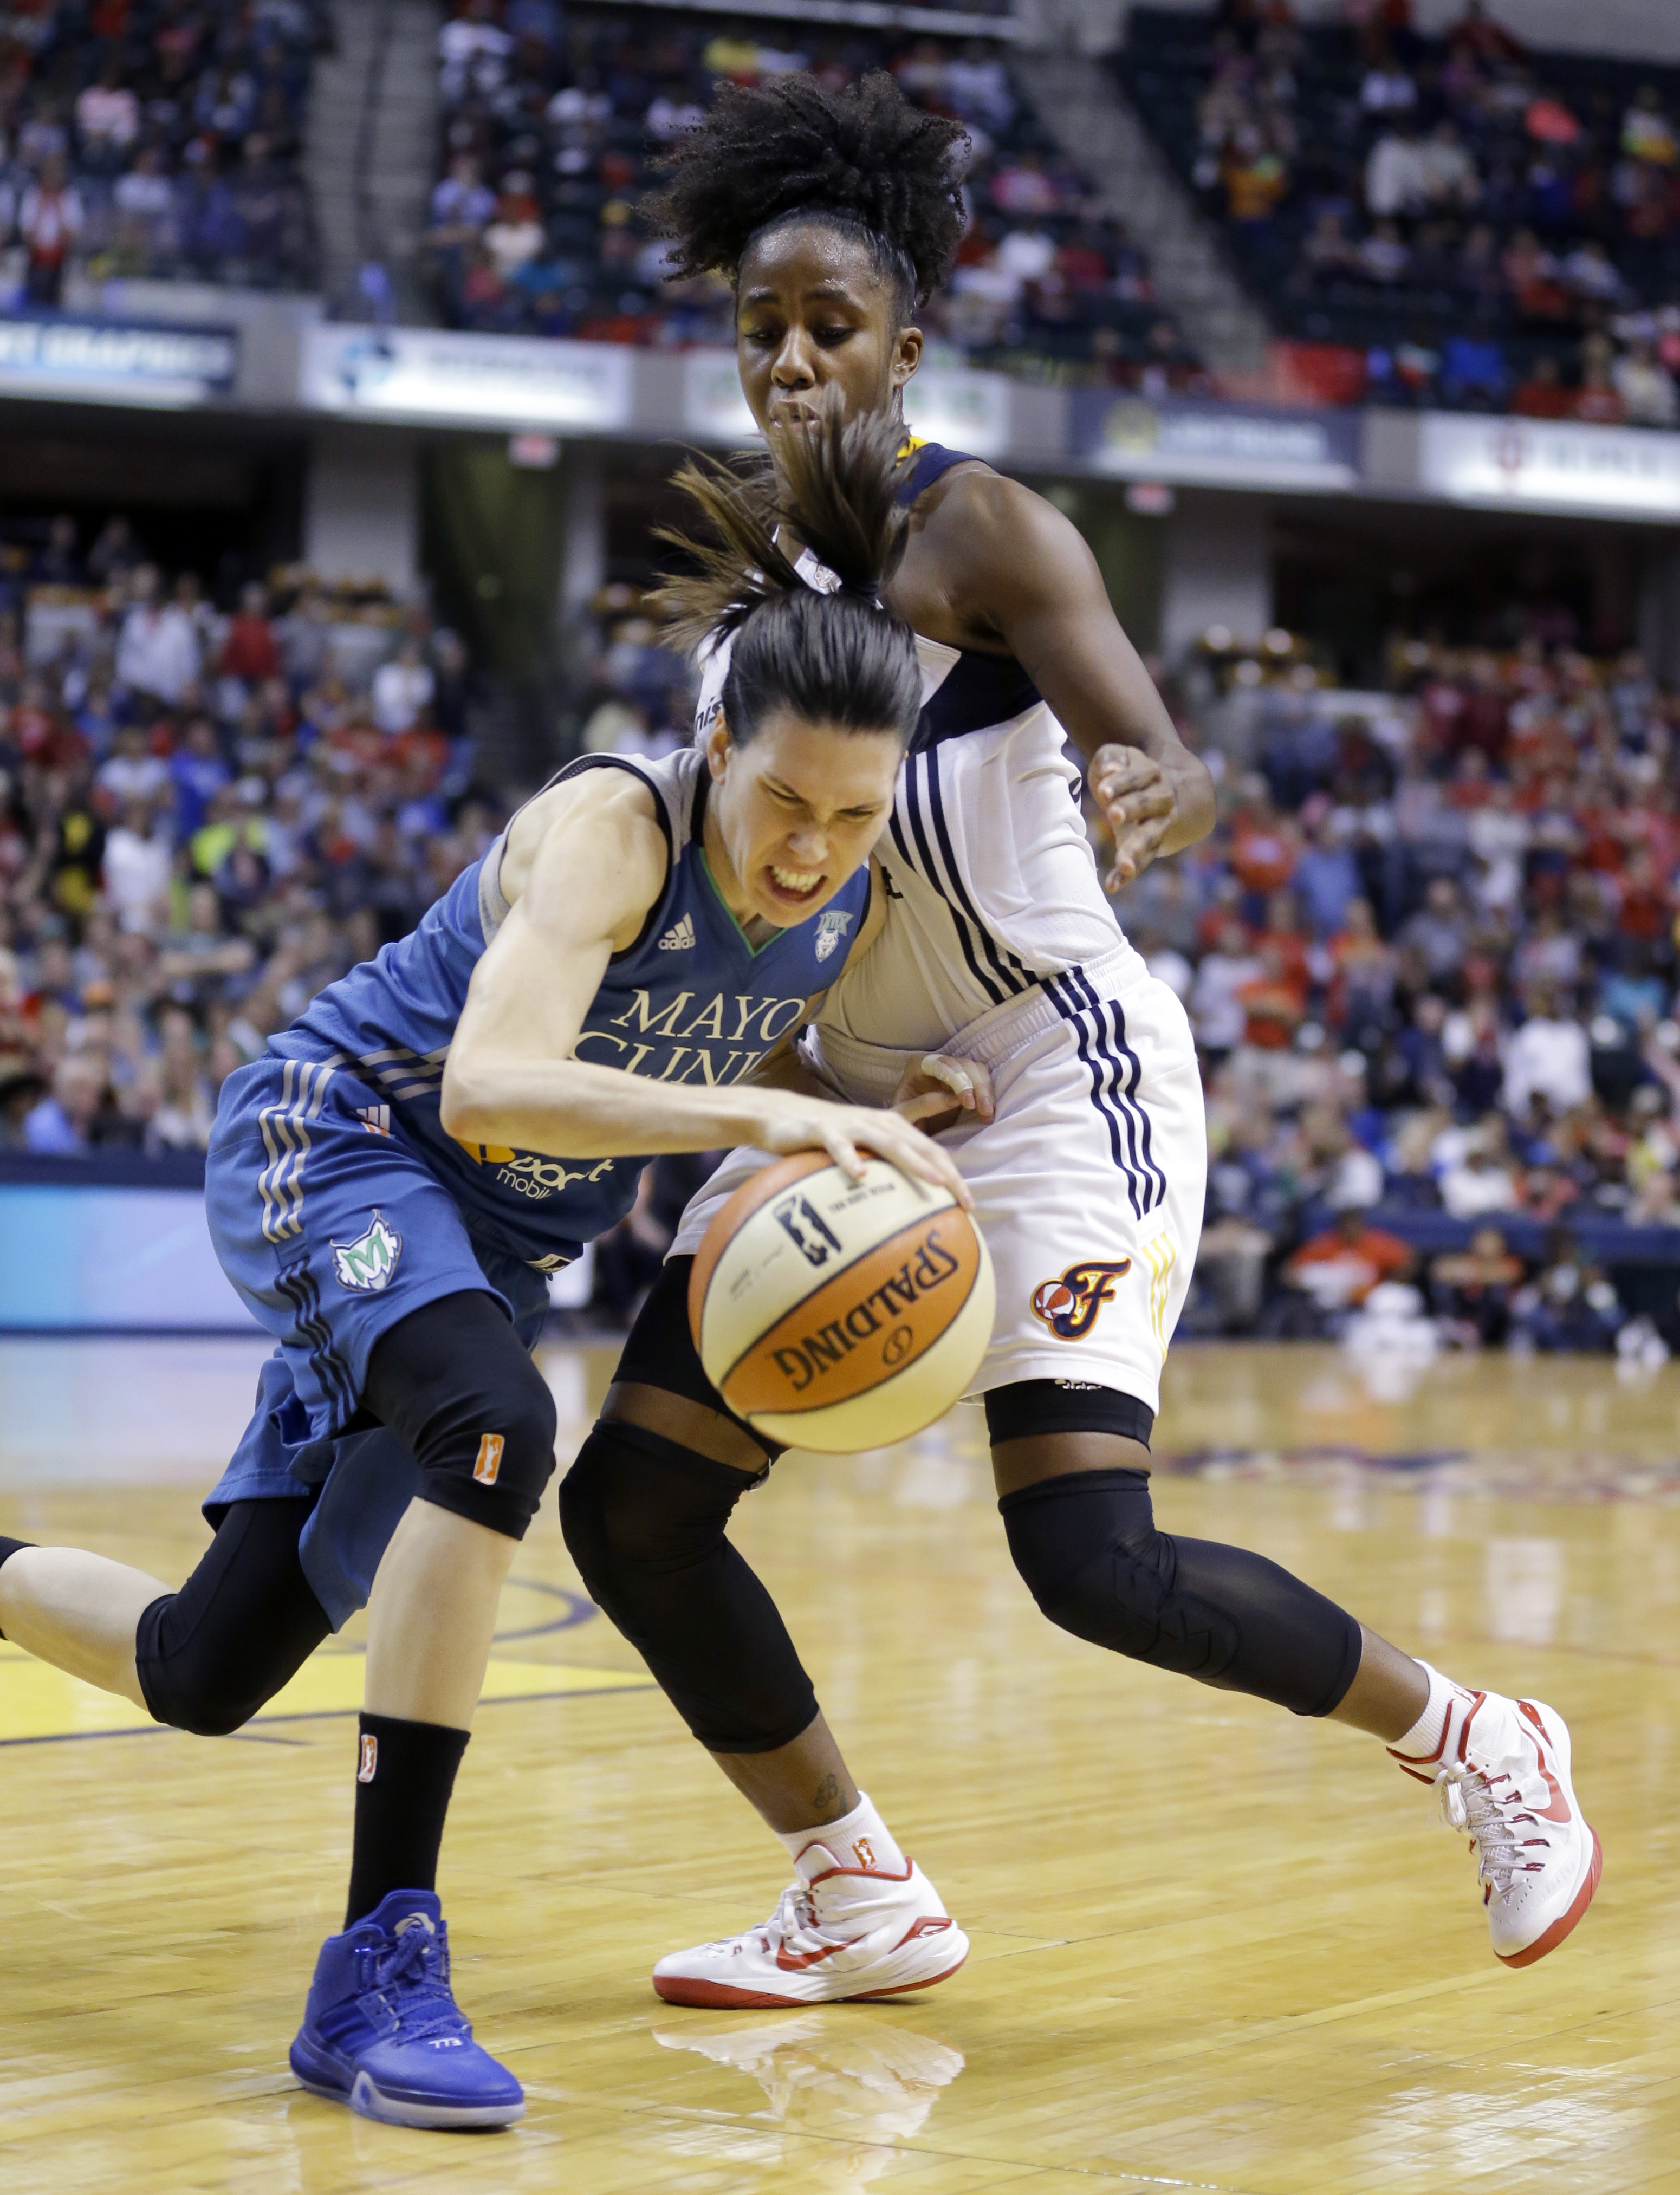 Minnesota Lynx's Anna Cruz, left, tries to dribble around Indiana Fever's Shenise Johnson in the second half of Game 4 of the WNBA Finals basketball series, in Indianapolis, Sunday, Oct. 11, 2015.  (AP Photo/Michael Conroy)